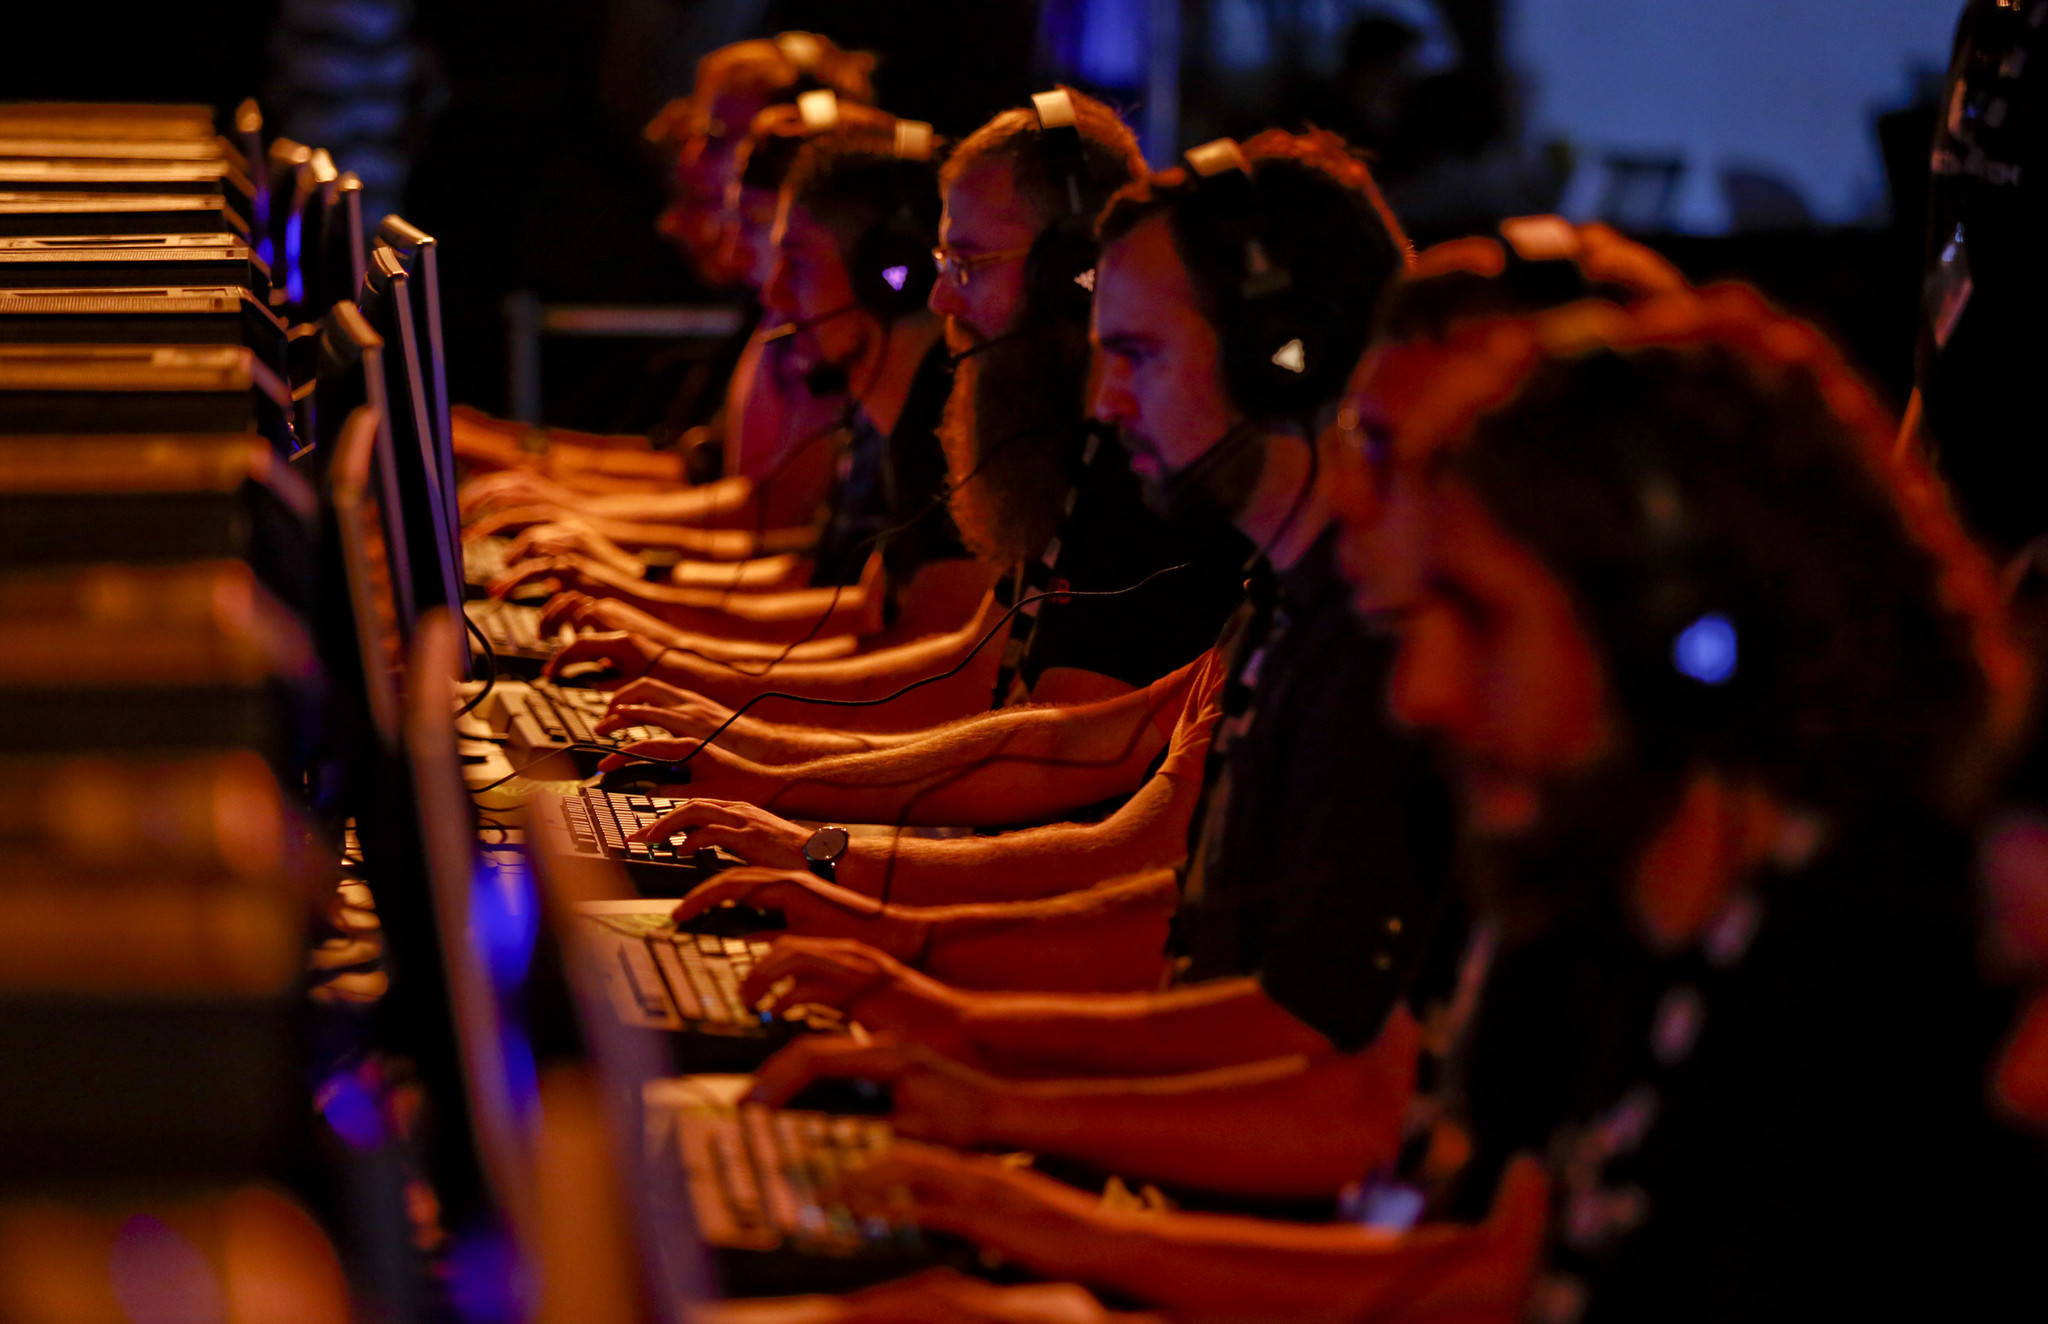 'Heroes of the Storm' player threatens Blizzard Entertainment gaming company with AK-47, prosecutors say